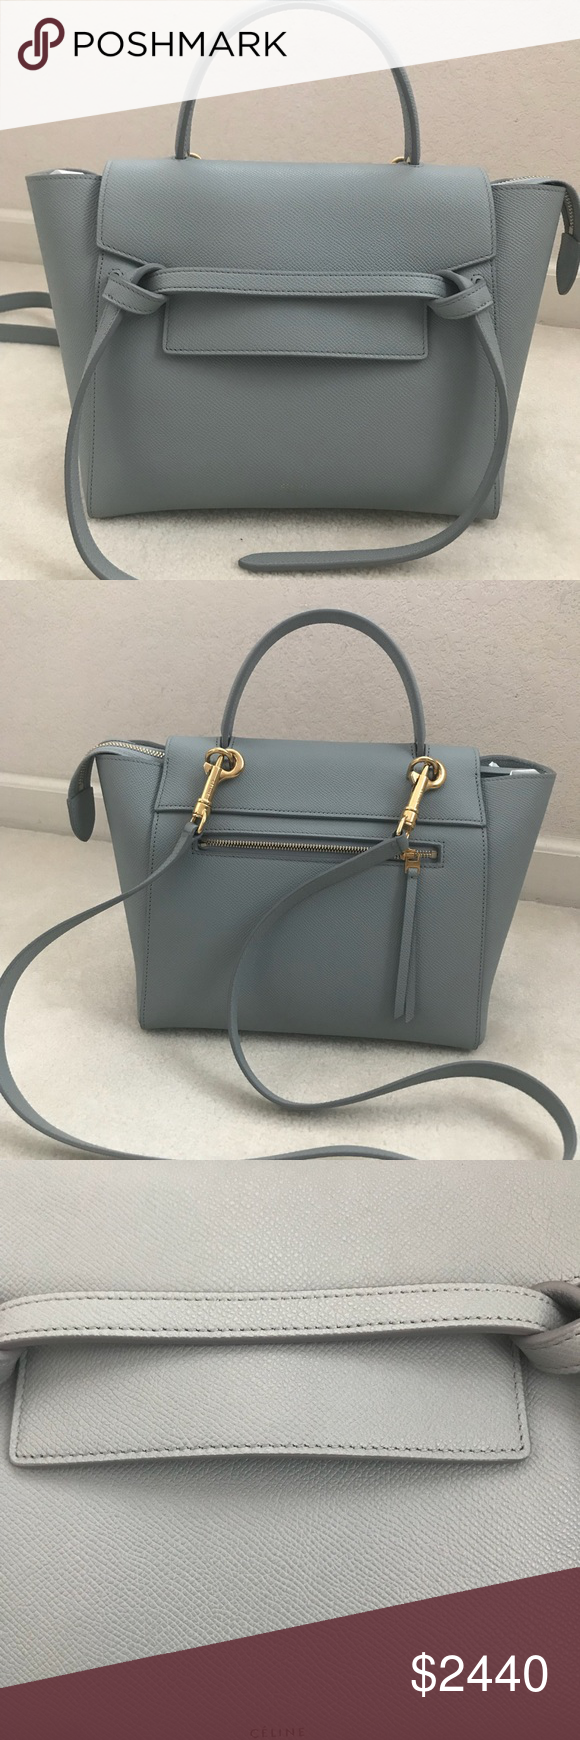 f2416957a9 Celine Micro Belt Bag in Cloud Like New Pristine condition. No flaws to  mention. Stunning sought after cloud blue color. Perfect for the spring and  summer ...